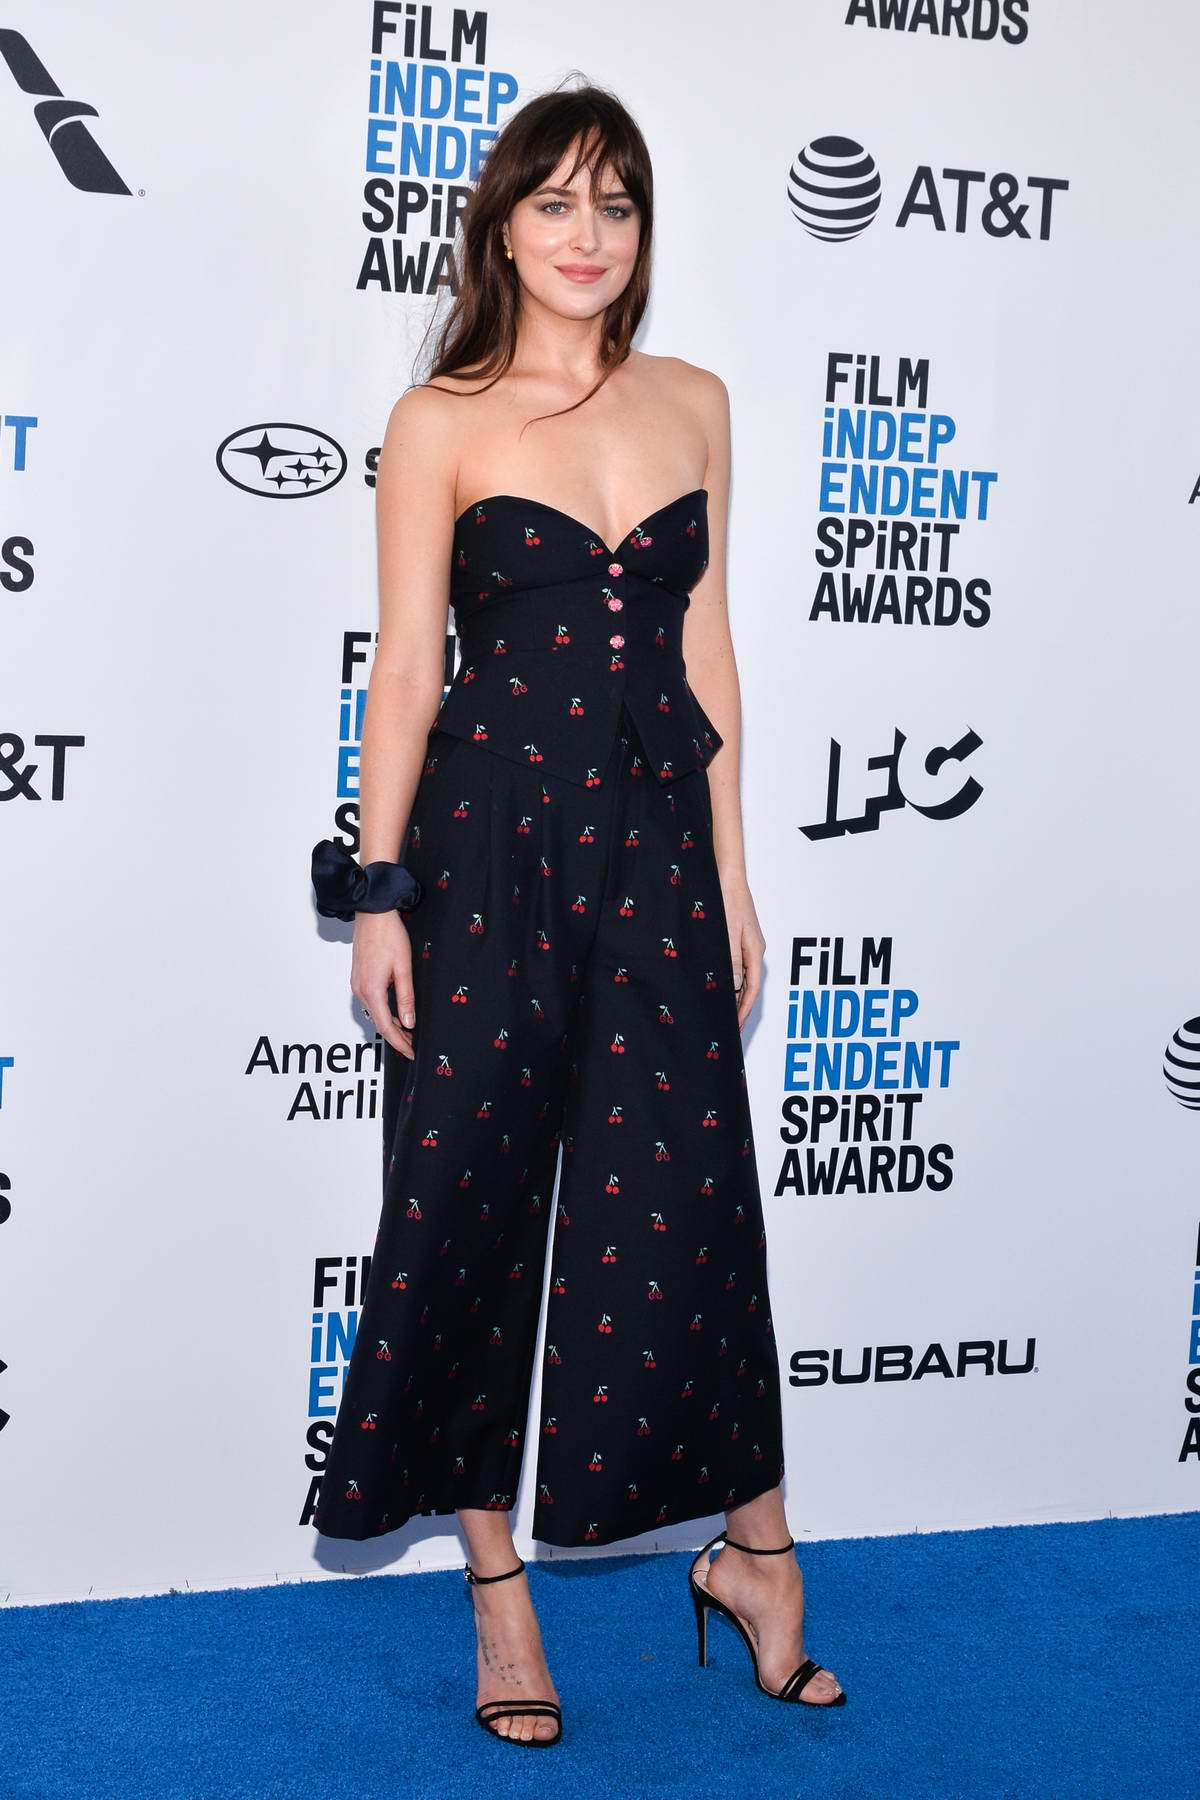 Dakota Johnson attends the 34th Film Independent Spirit Awards in Santa Monica, California